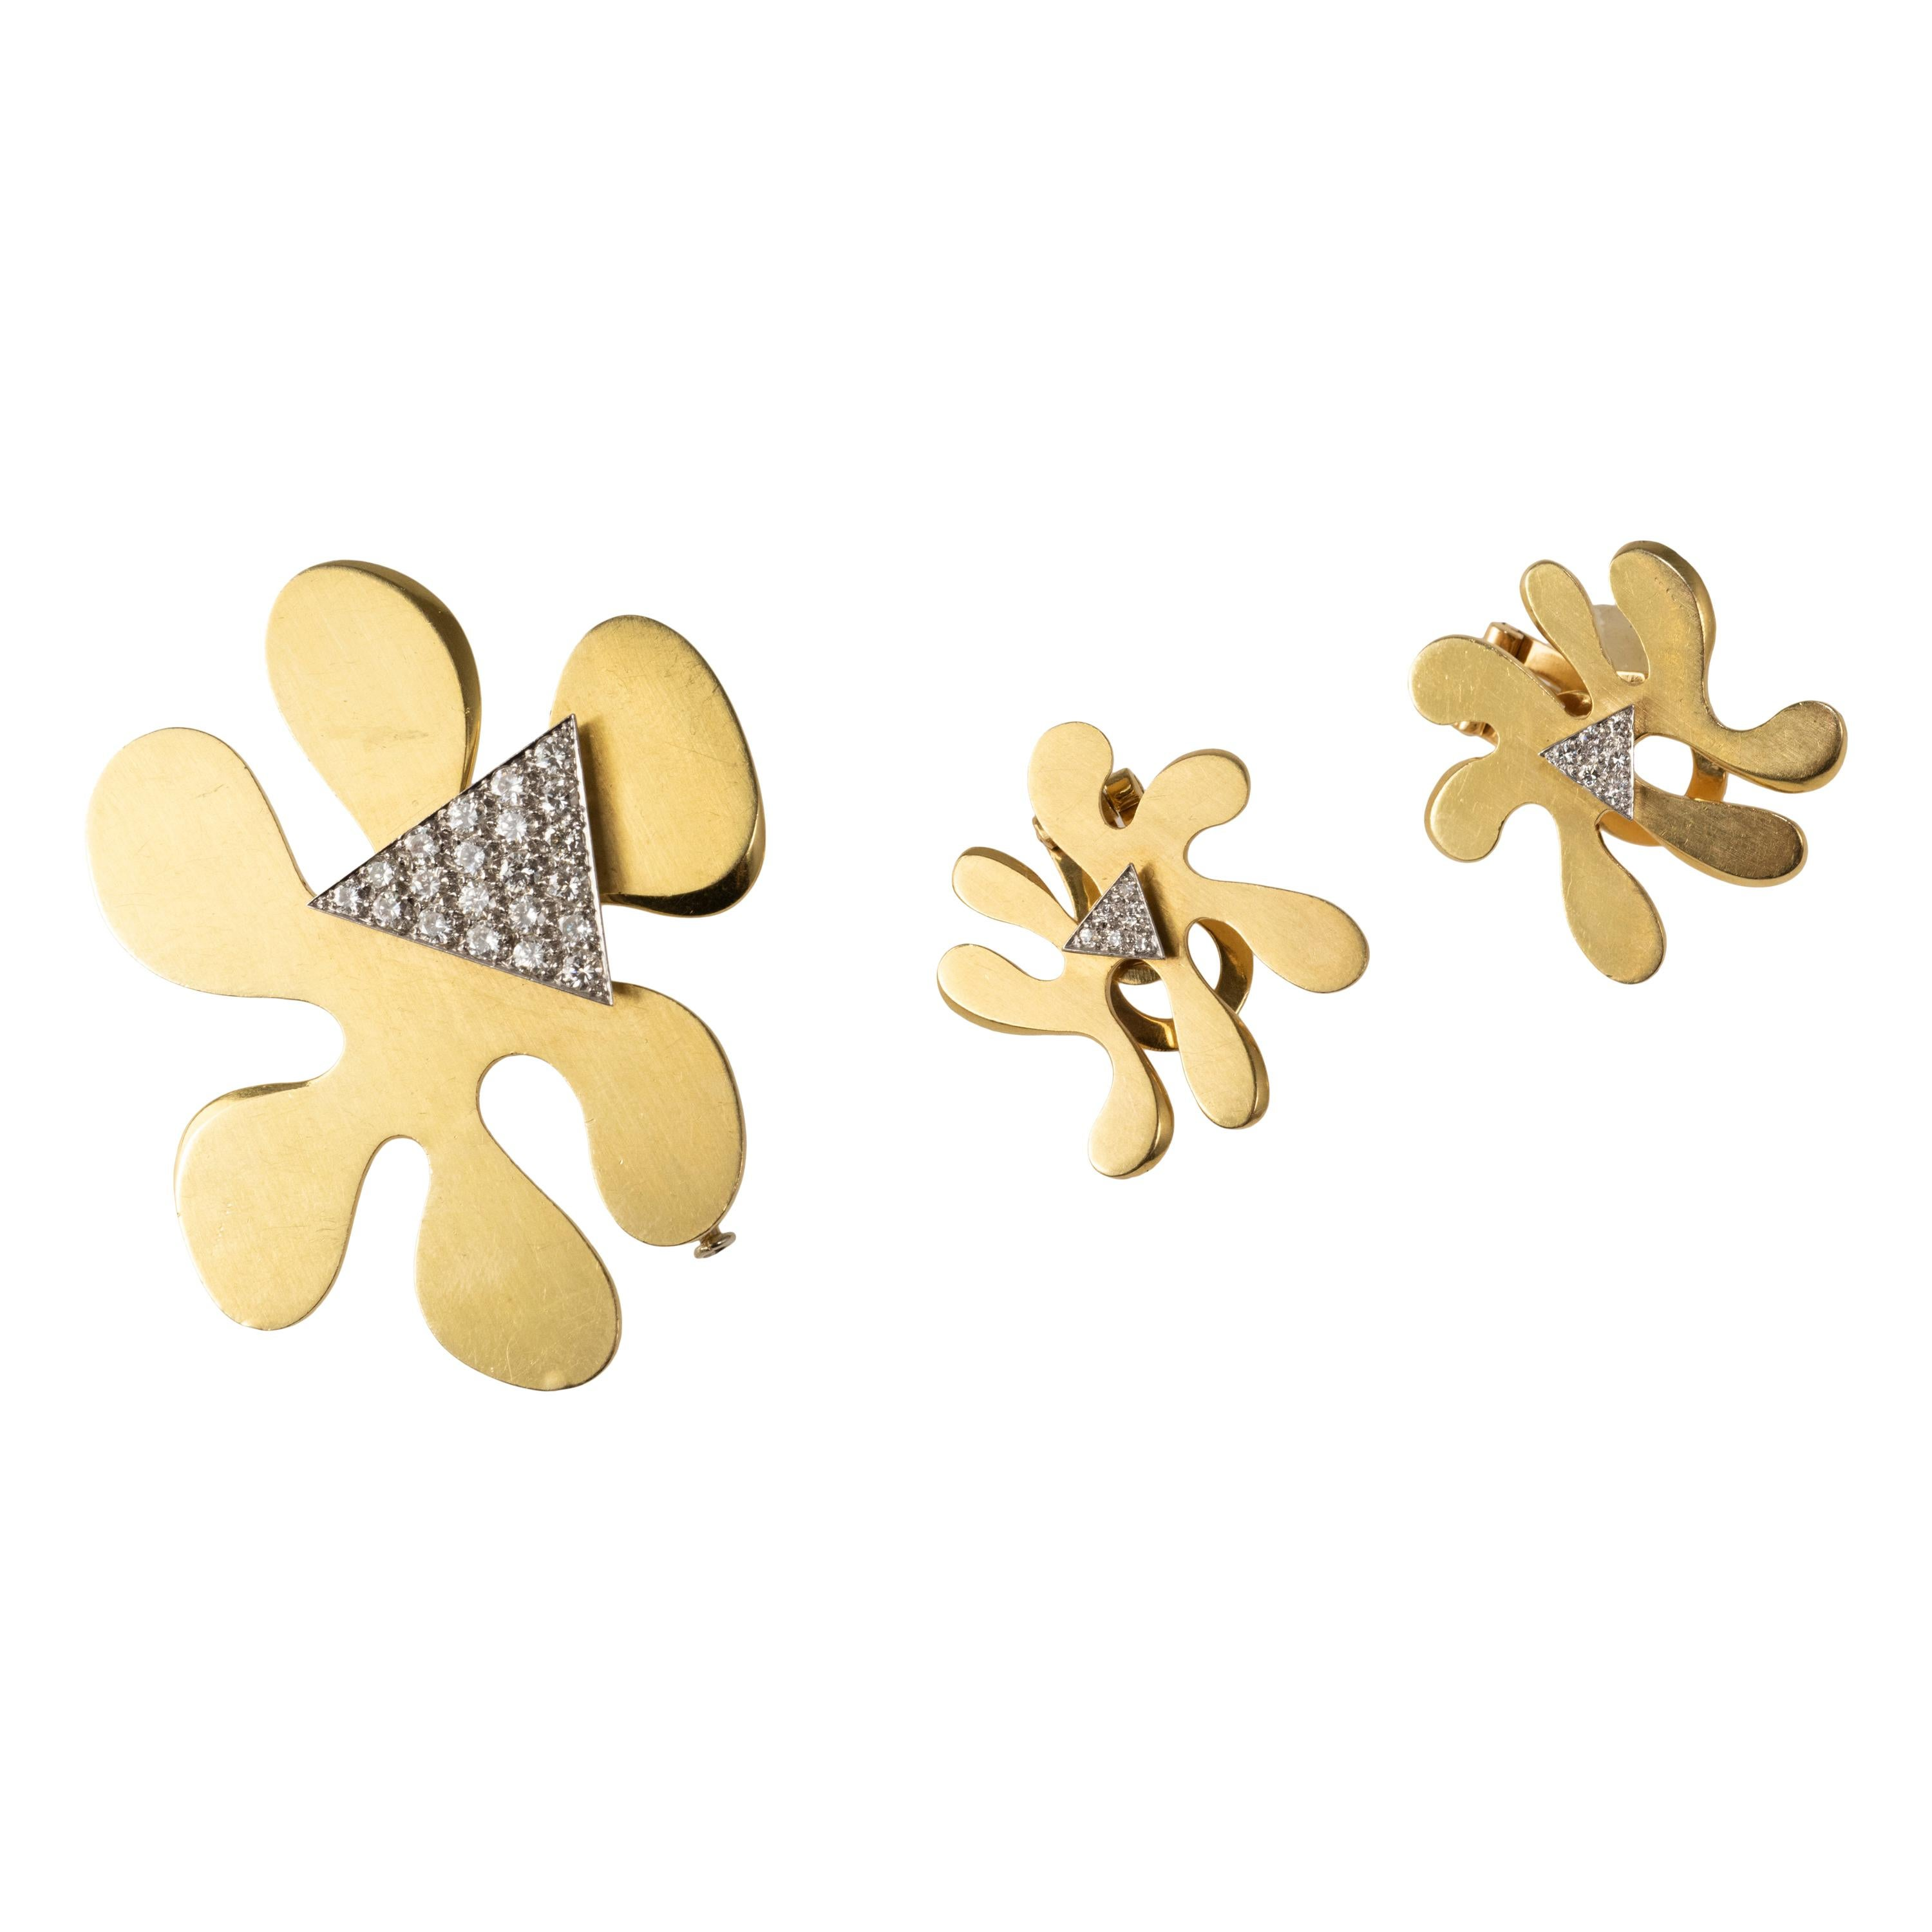 1960s Marianne Ostier Ear Clips and Brooch Set